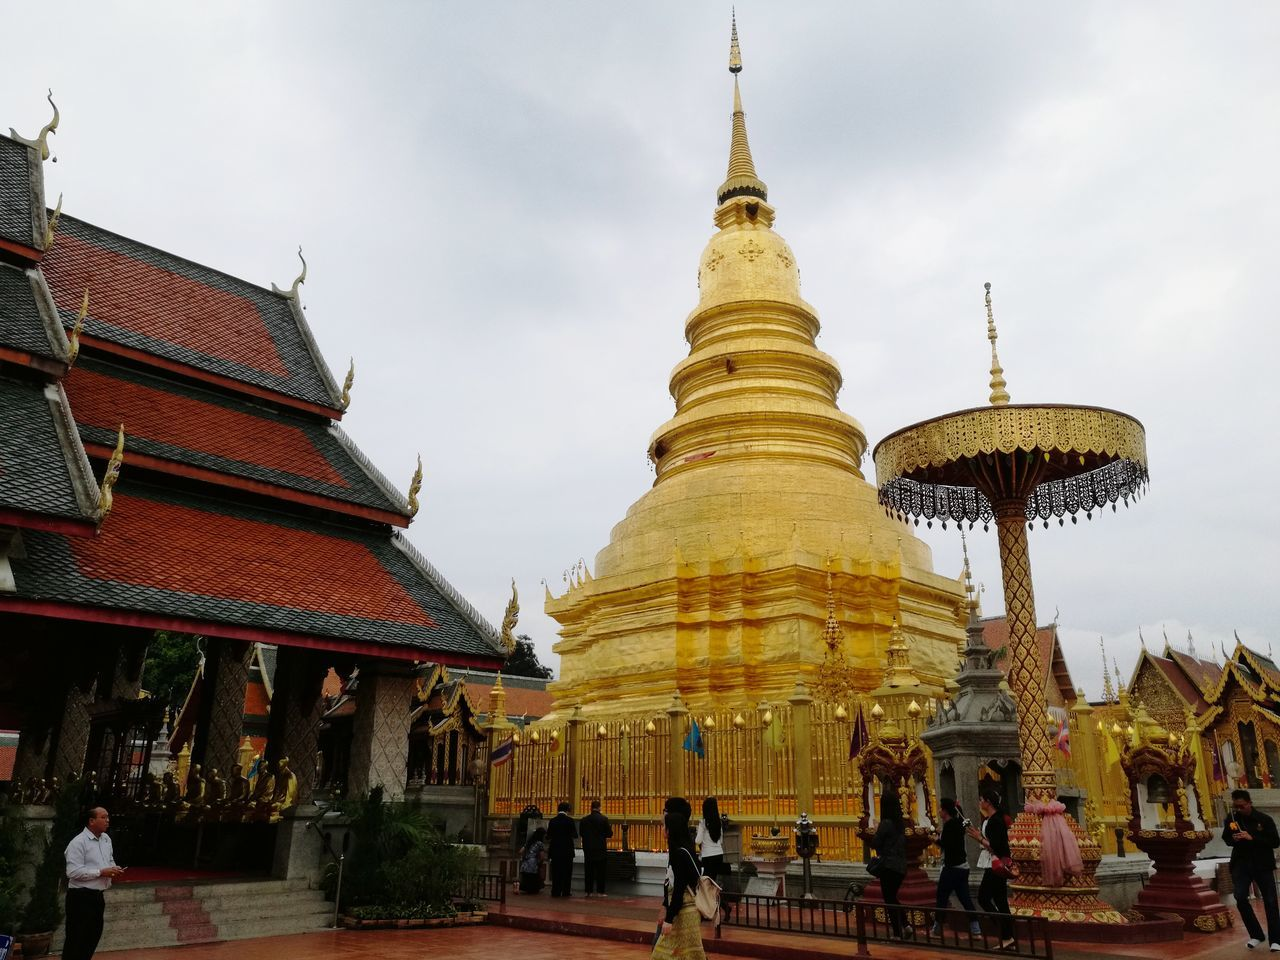 Religion Pagoda Place Of Worship Gold Colored Spirituality Architecture Travel Cultures People Outdoors Place Of Worship Landmark Temple History Architecture Gold Pagoda Spirituality Travel Textured  Thailand Statue Tradition Vacations Textured